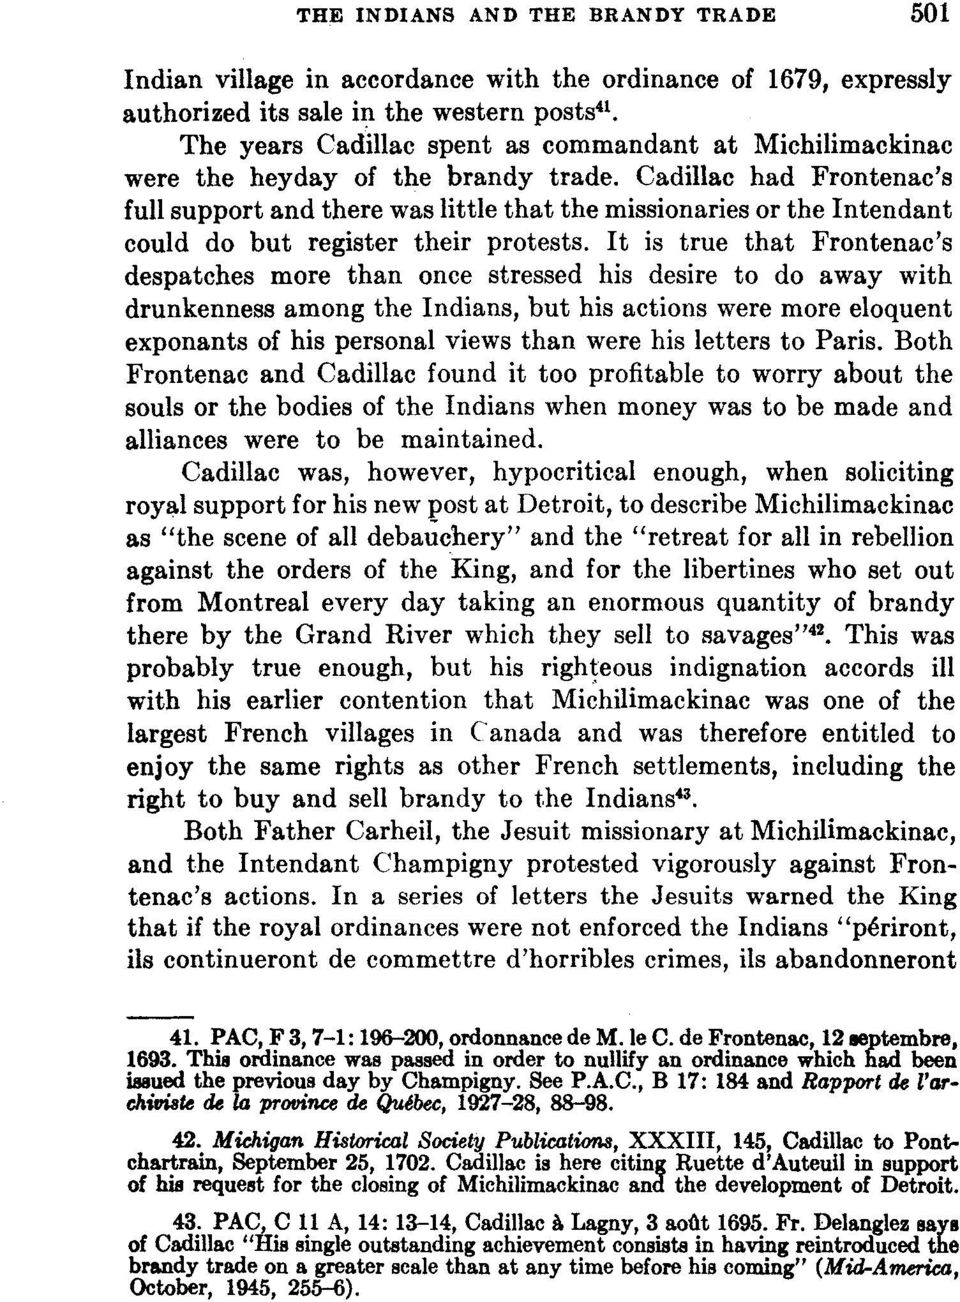 Cadillac had Frontenac's full support and there was little that the missionaries or the Intendant could do but register their protests.